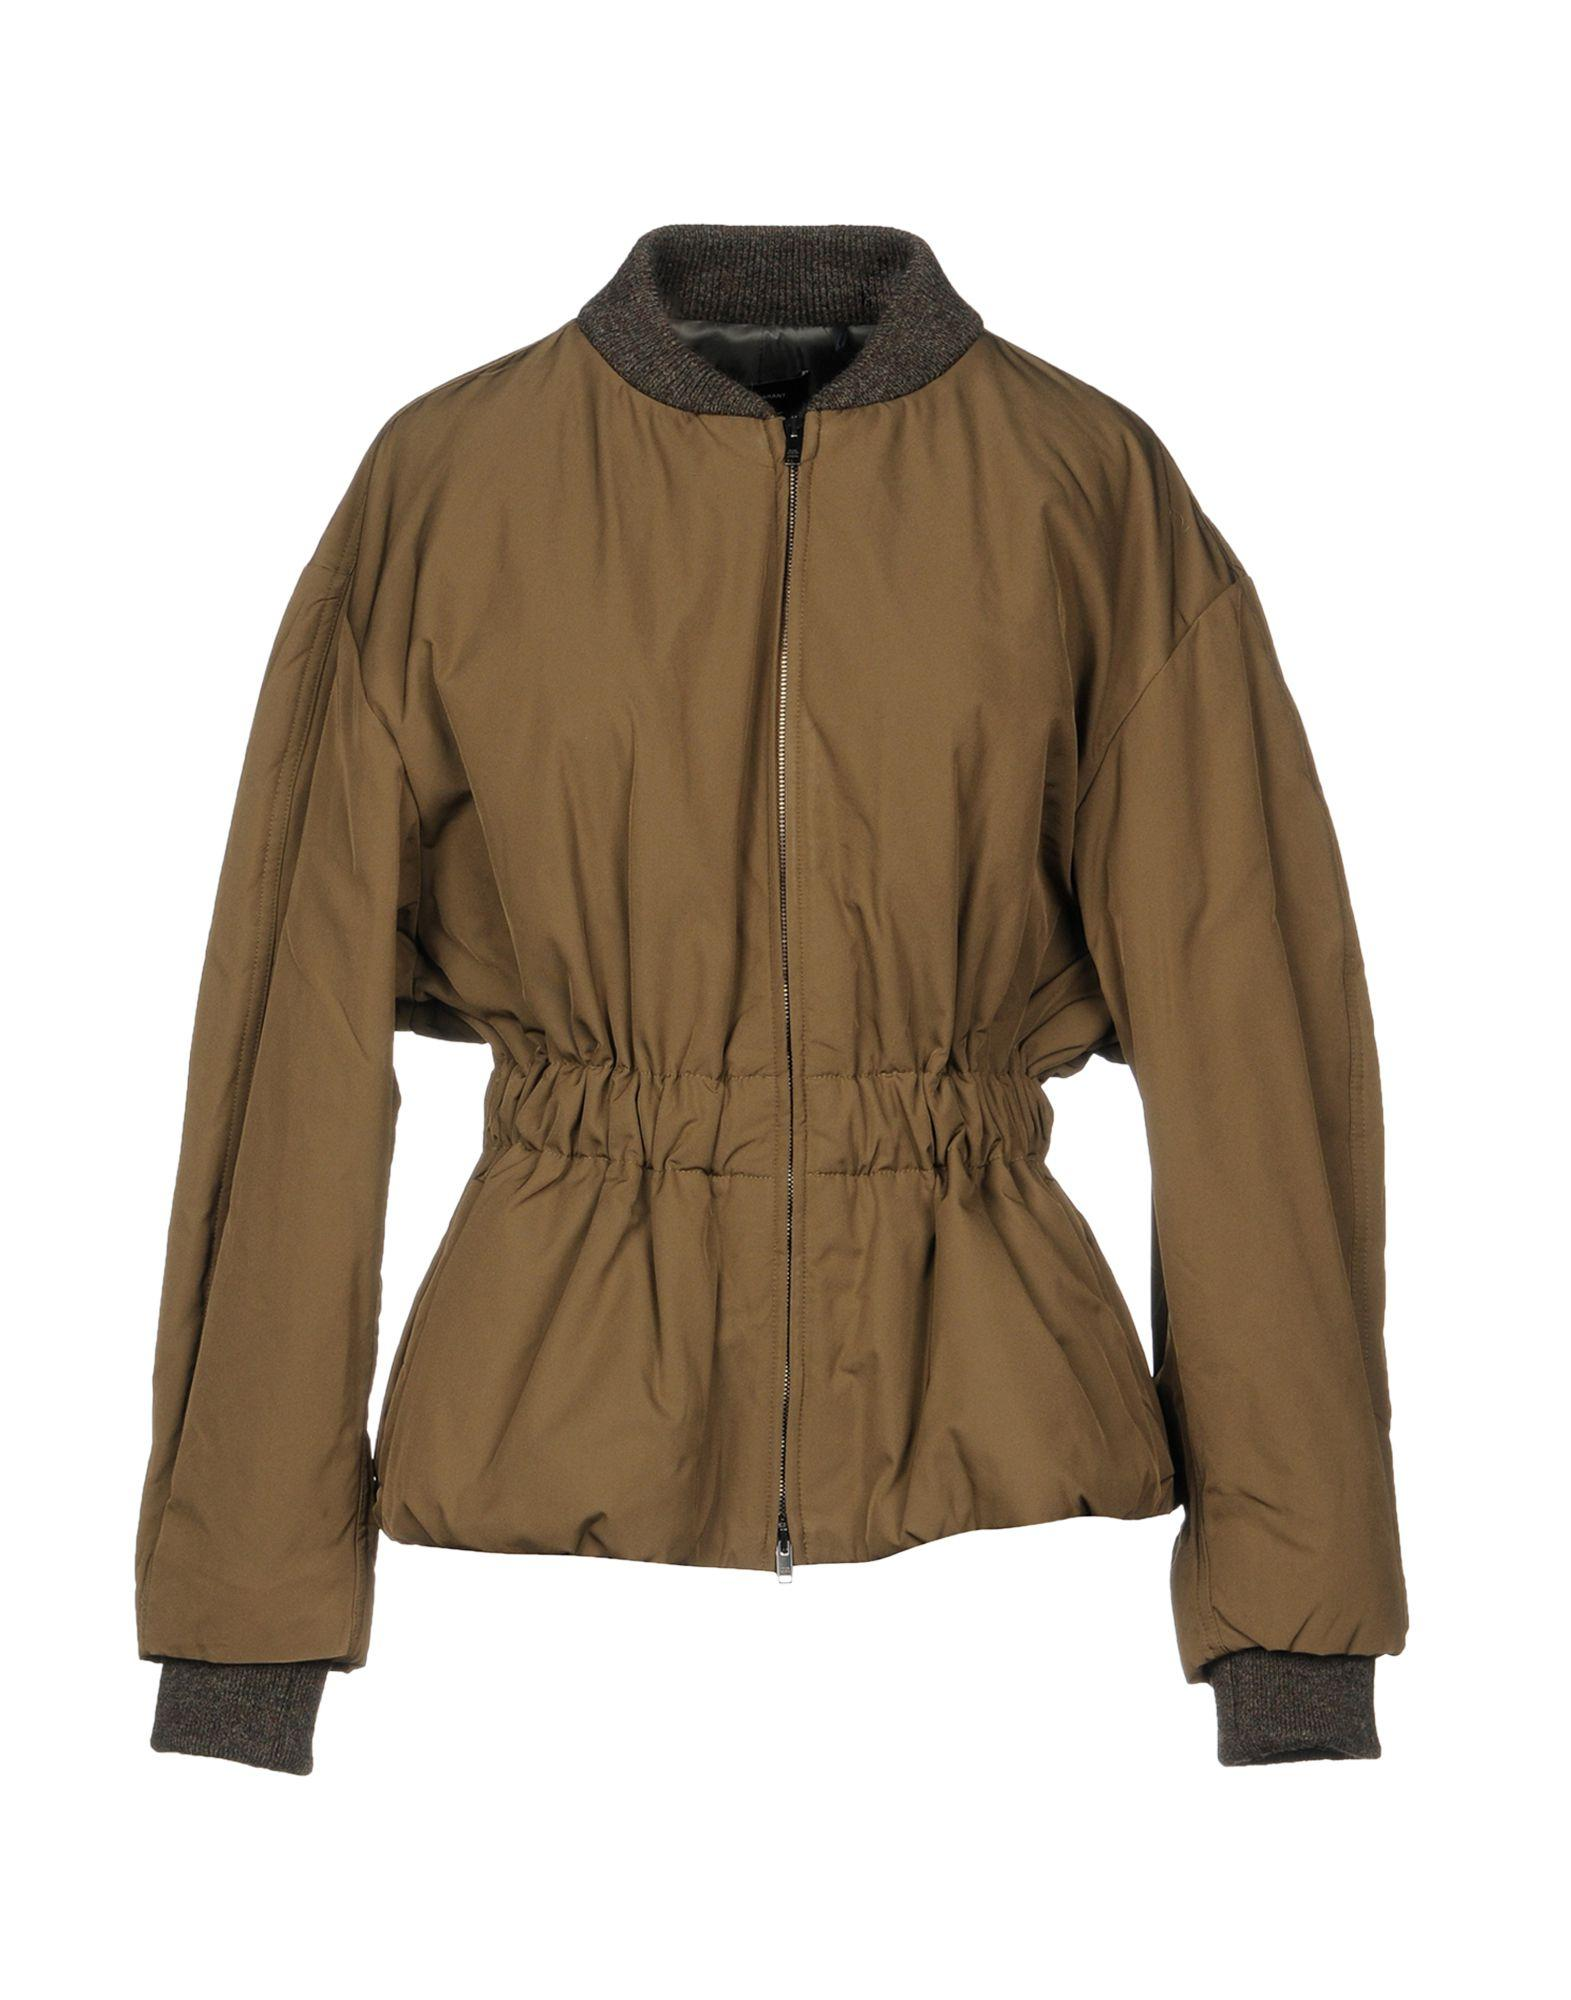 Isabel Marant Jacket In Military Green